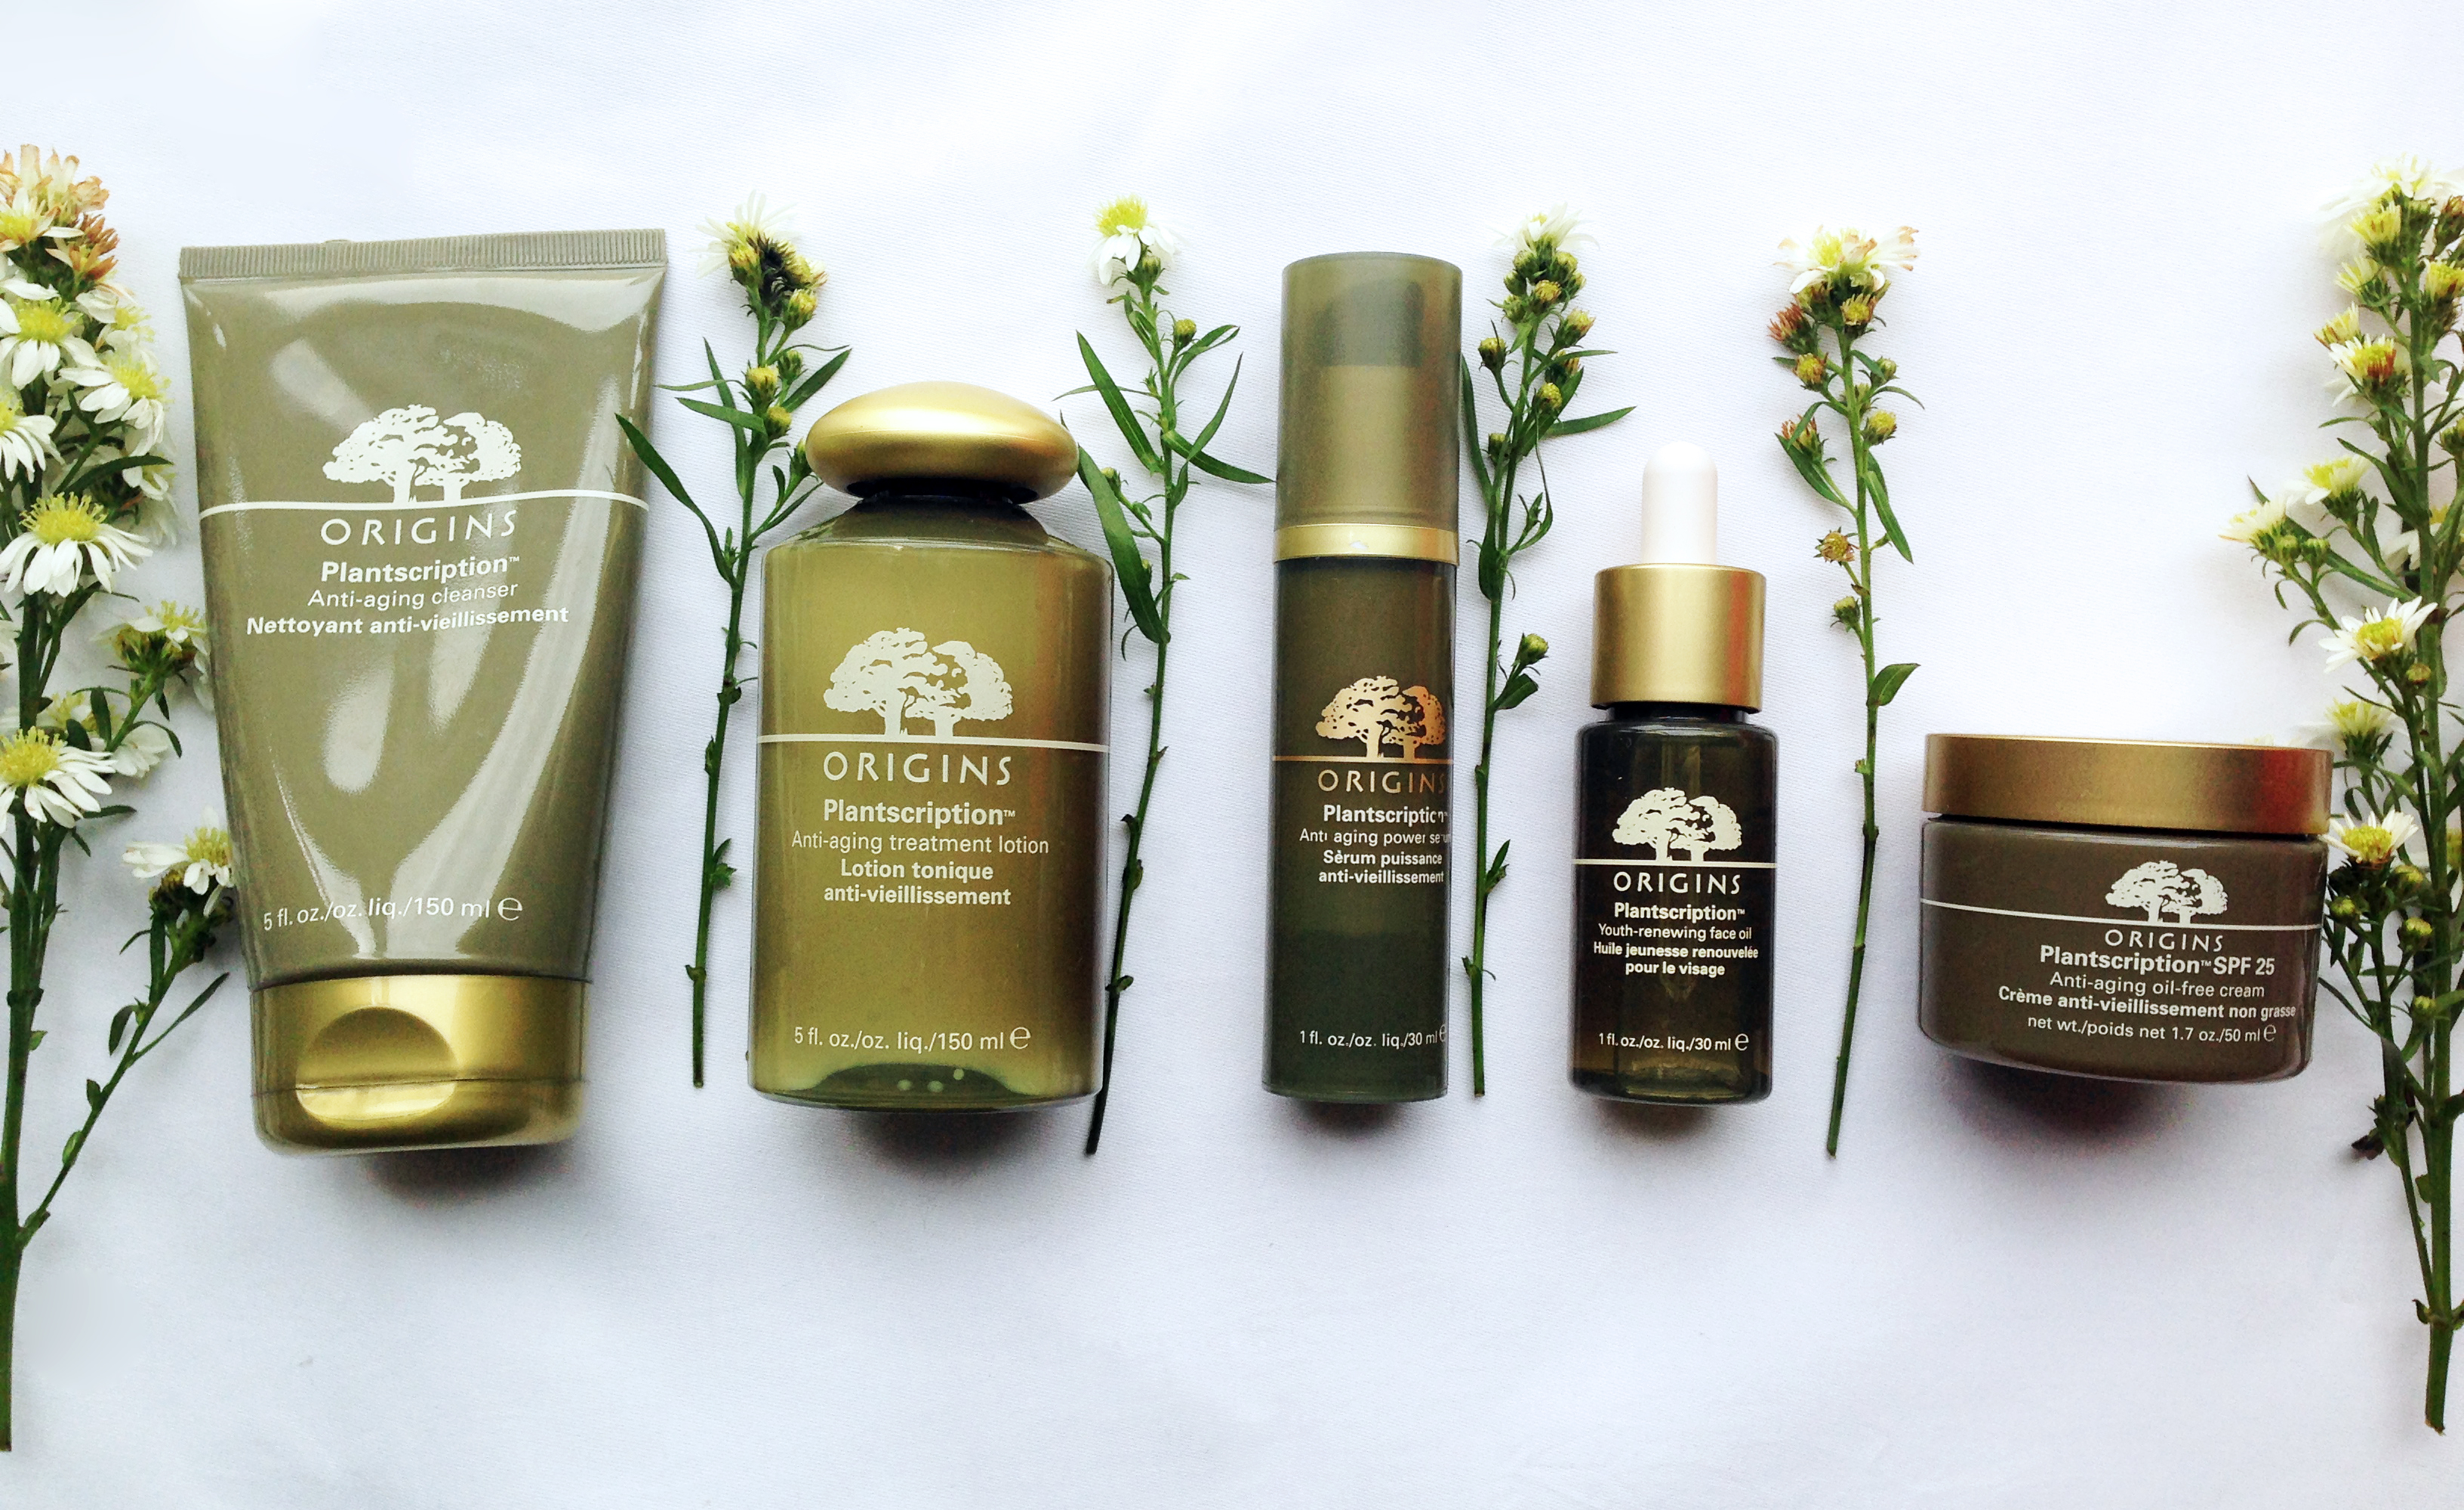 Revisiting The New Origins Plantscription Anti Aging Skincare Collection